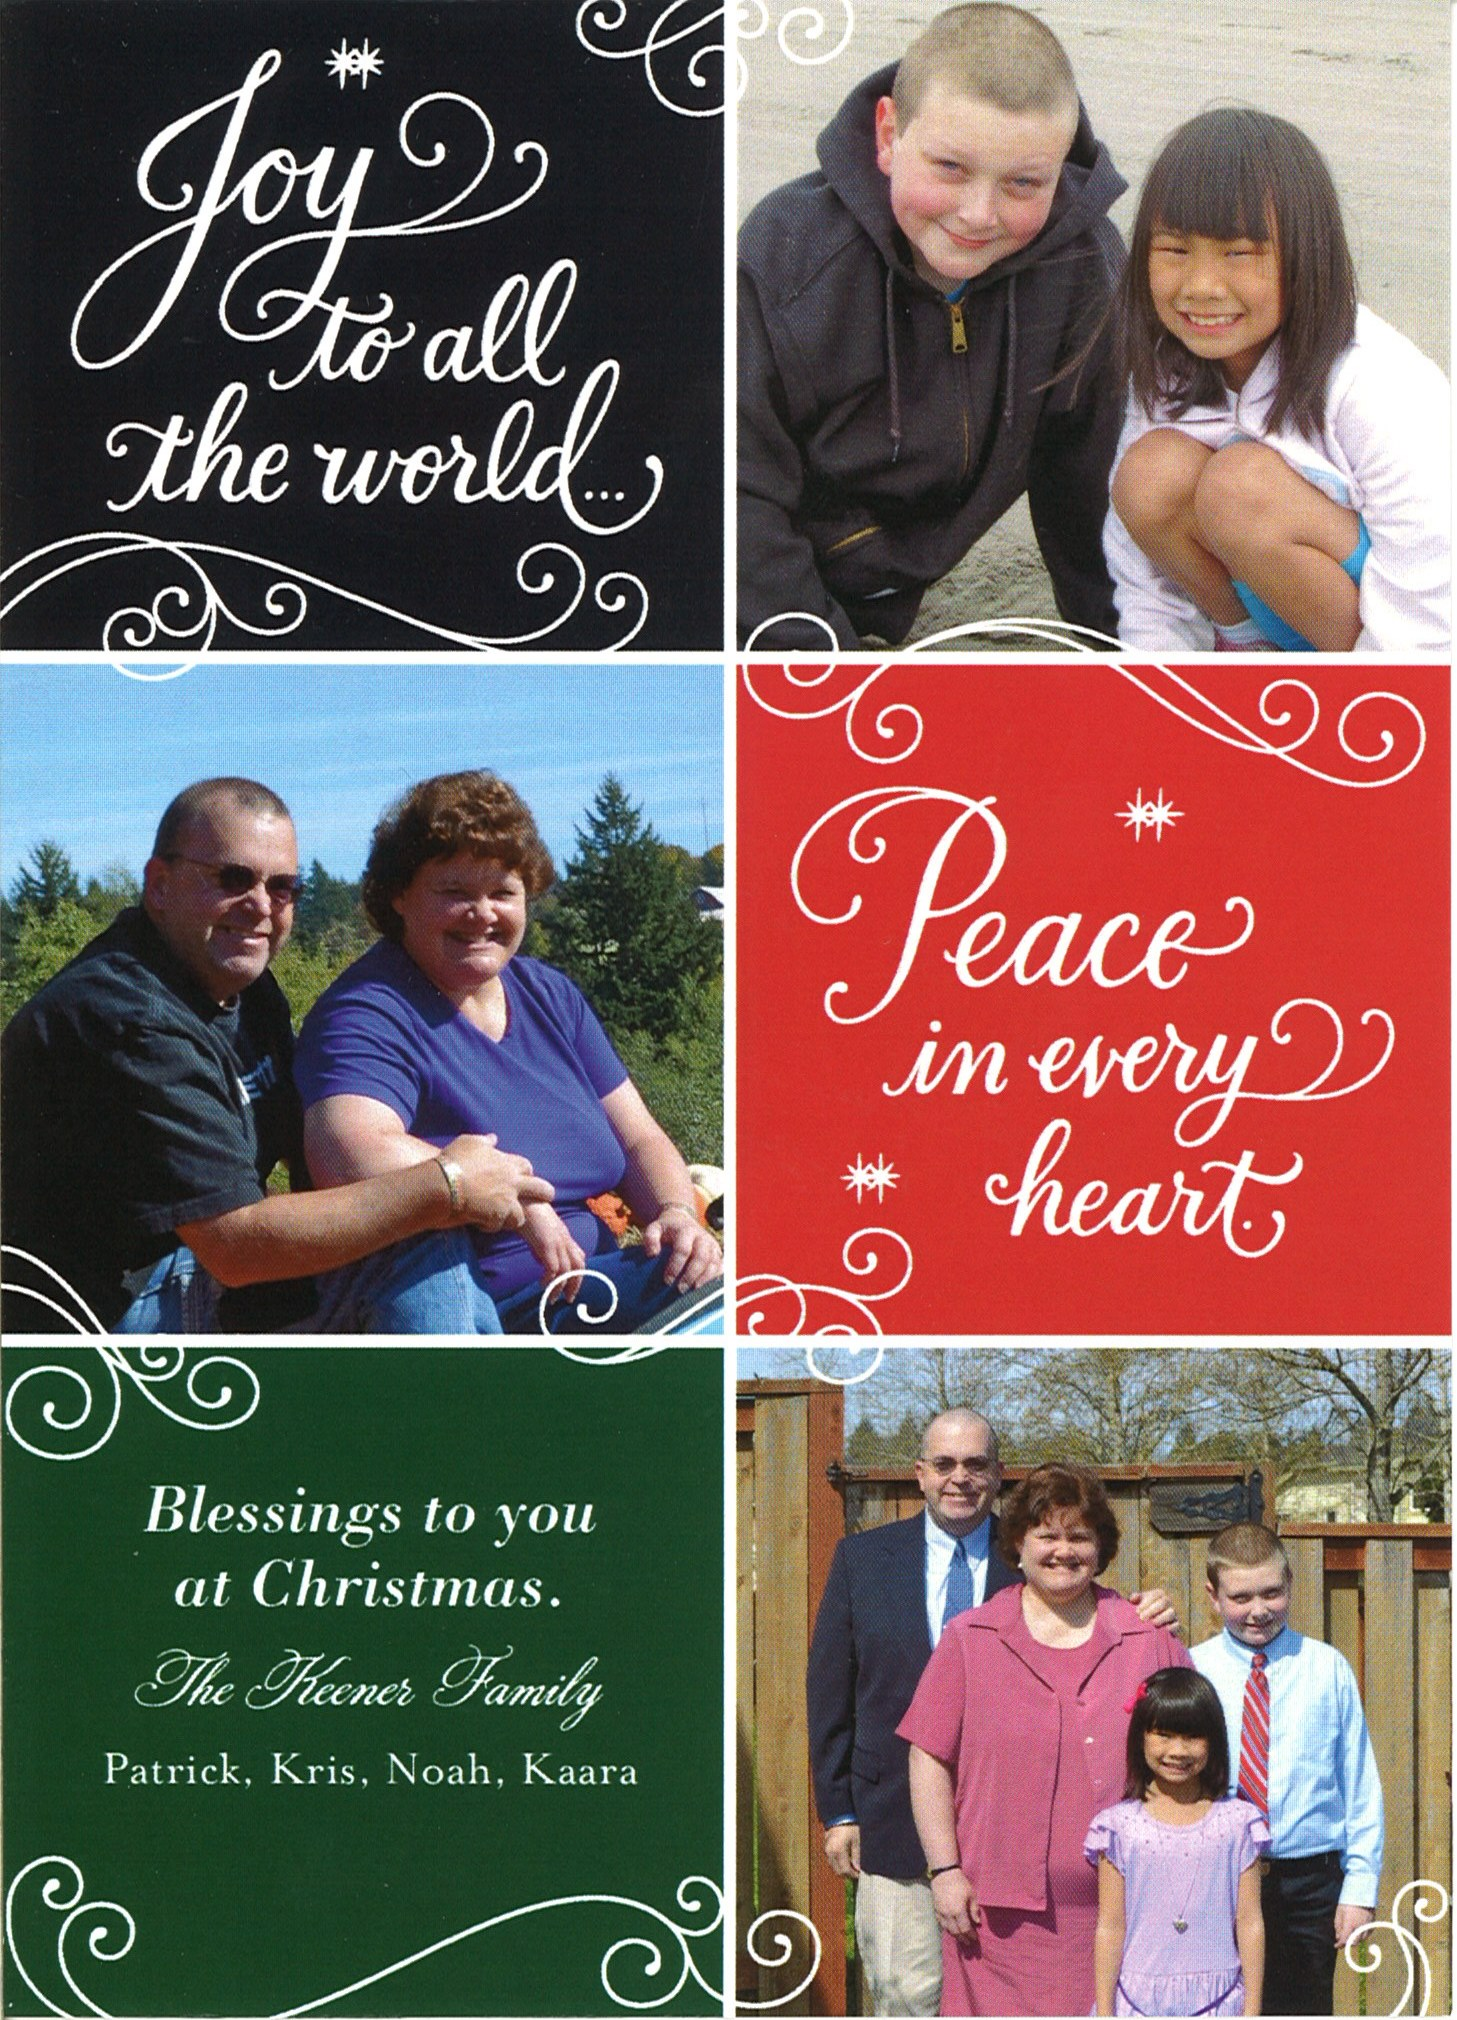 ChristmasCard2013-1